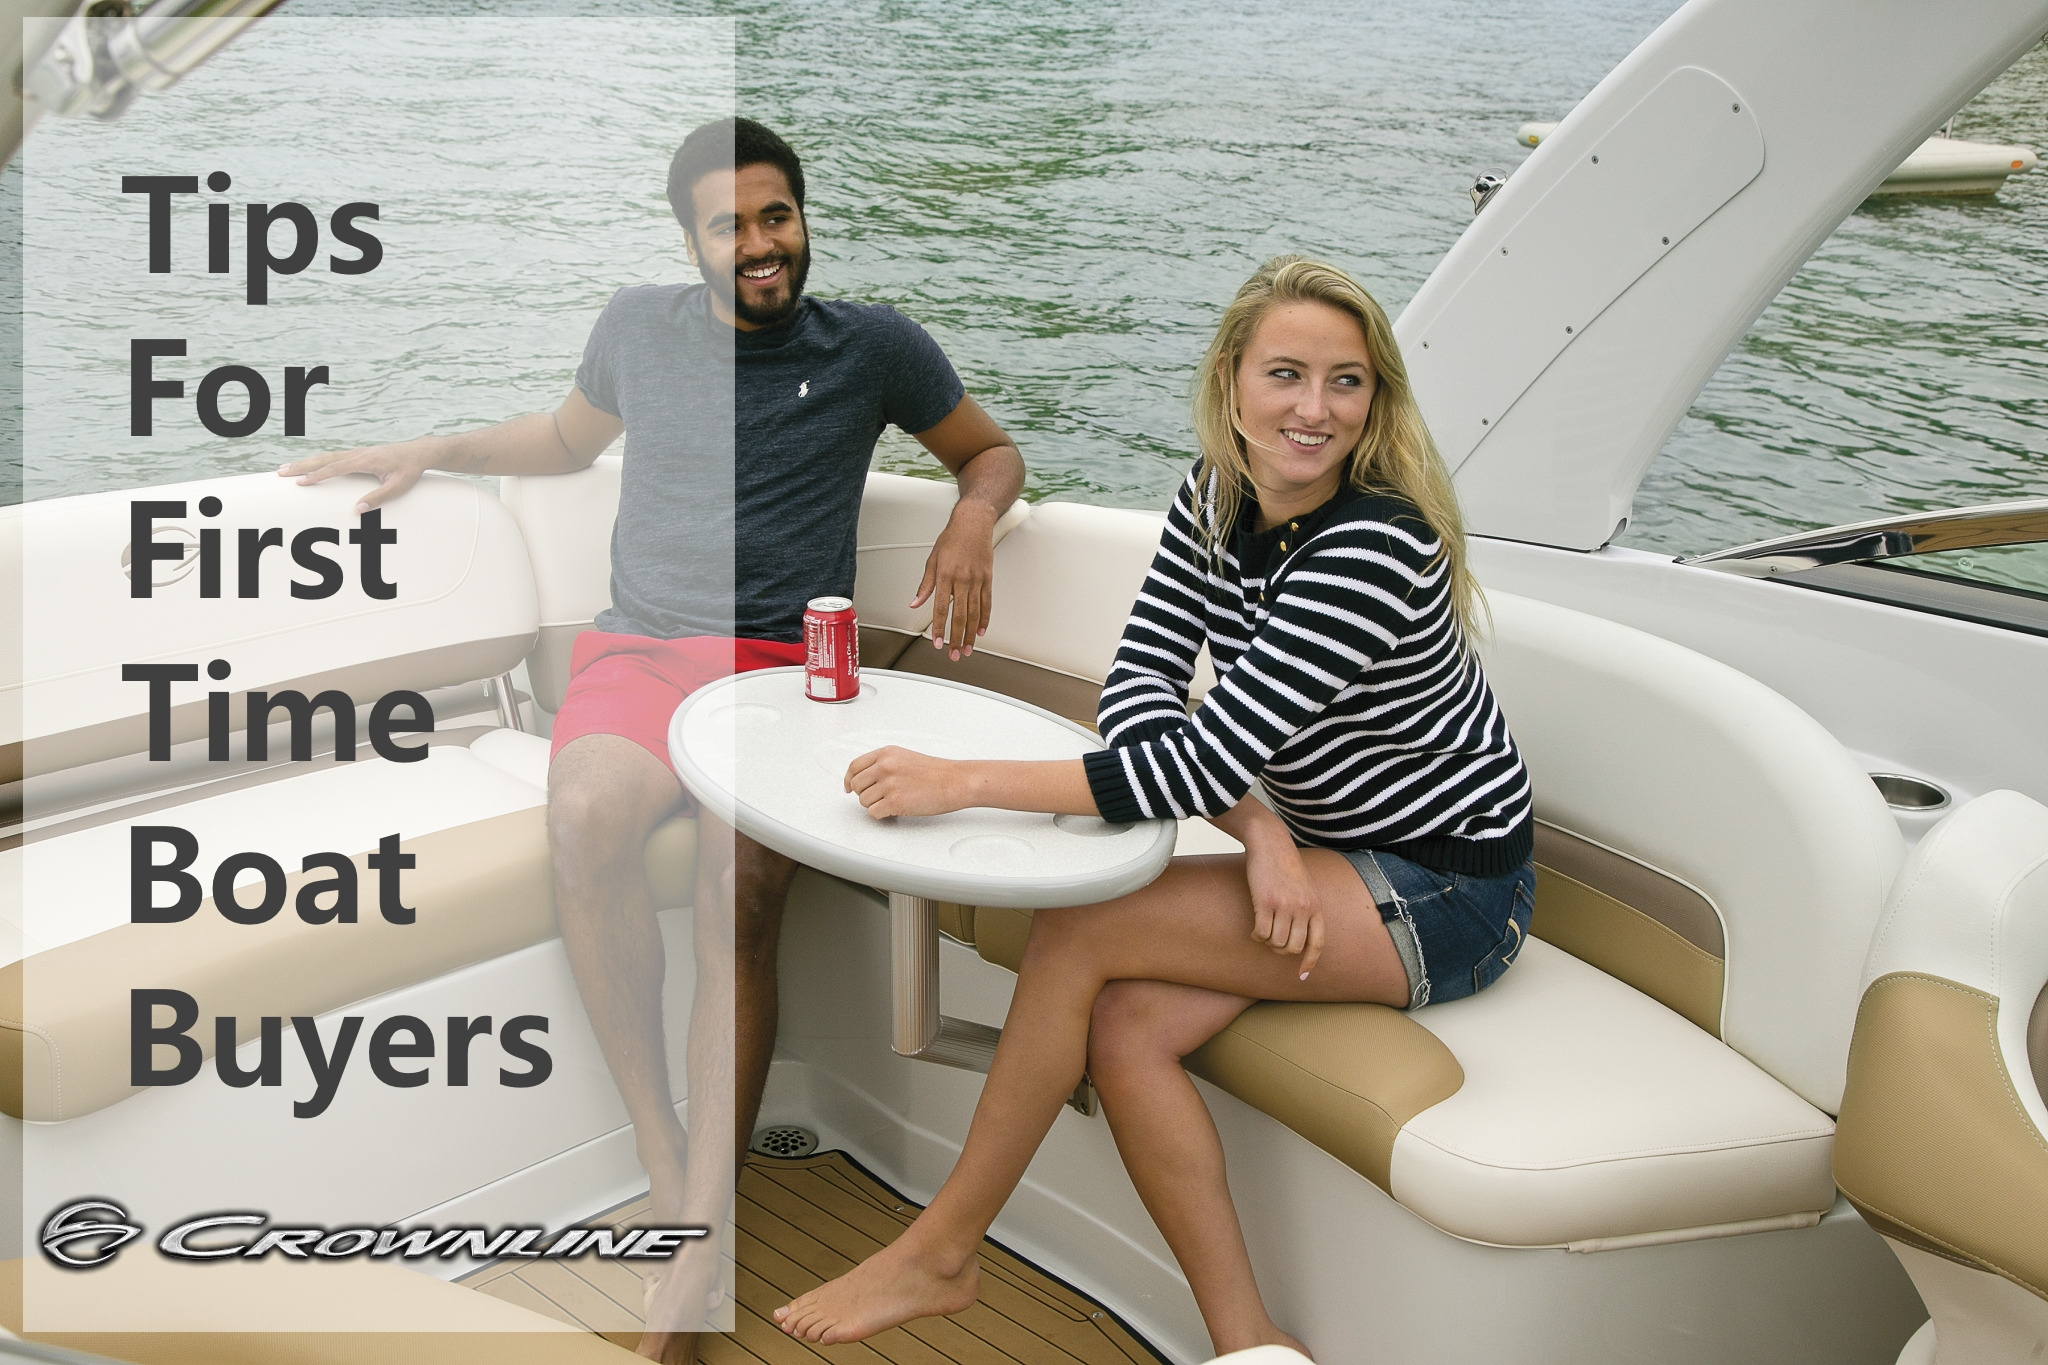 Crownline - First Time Boat Buyers